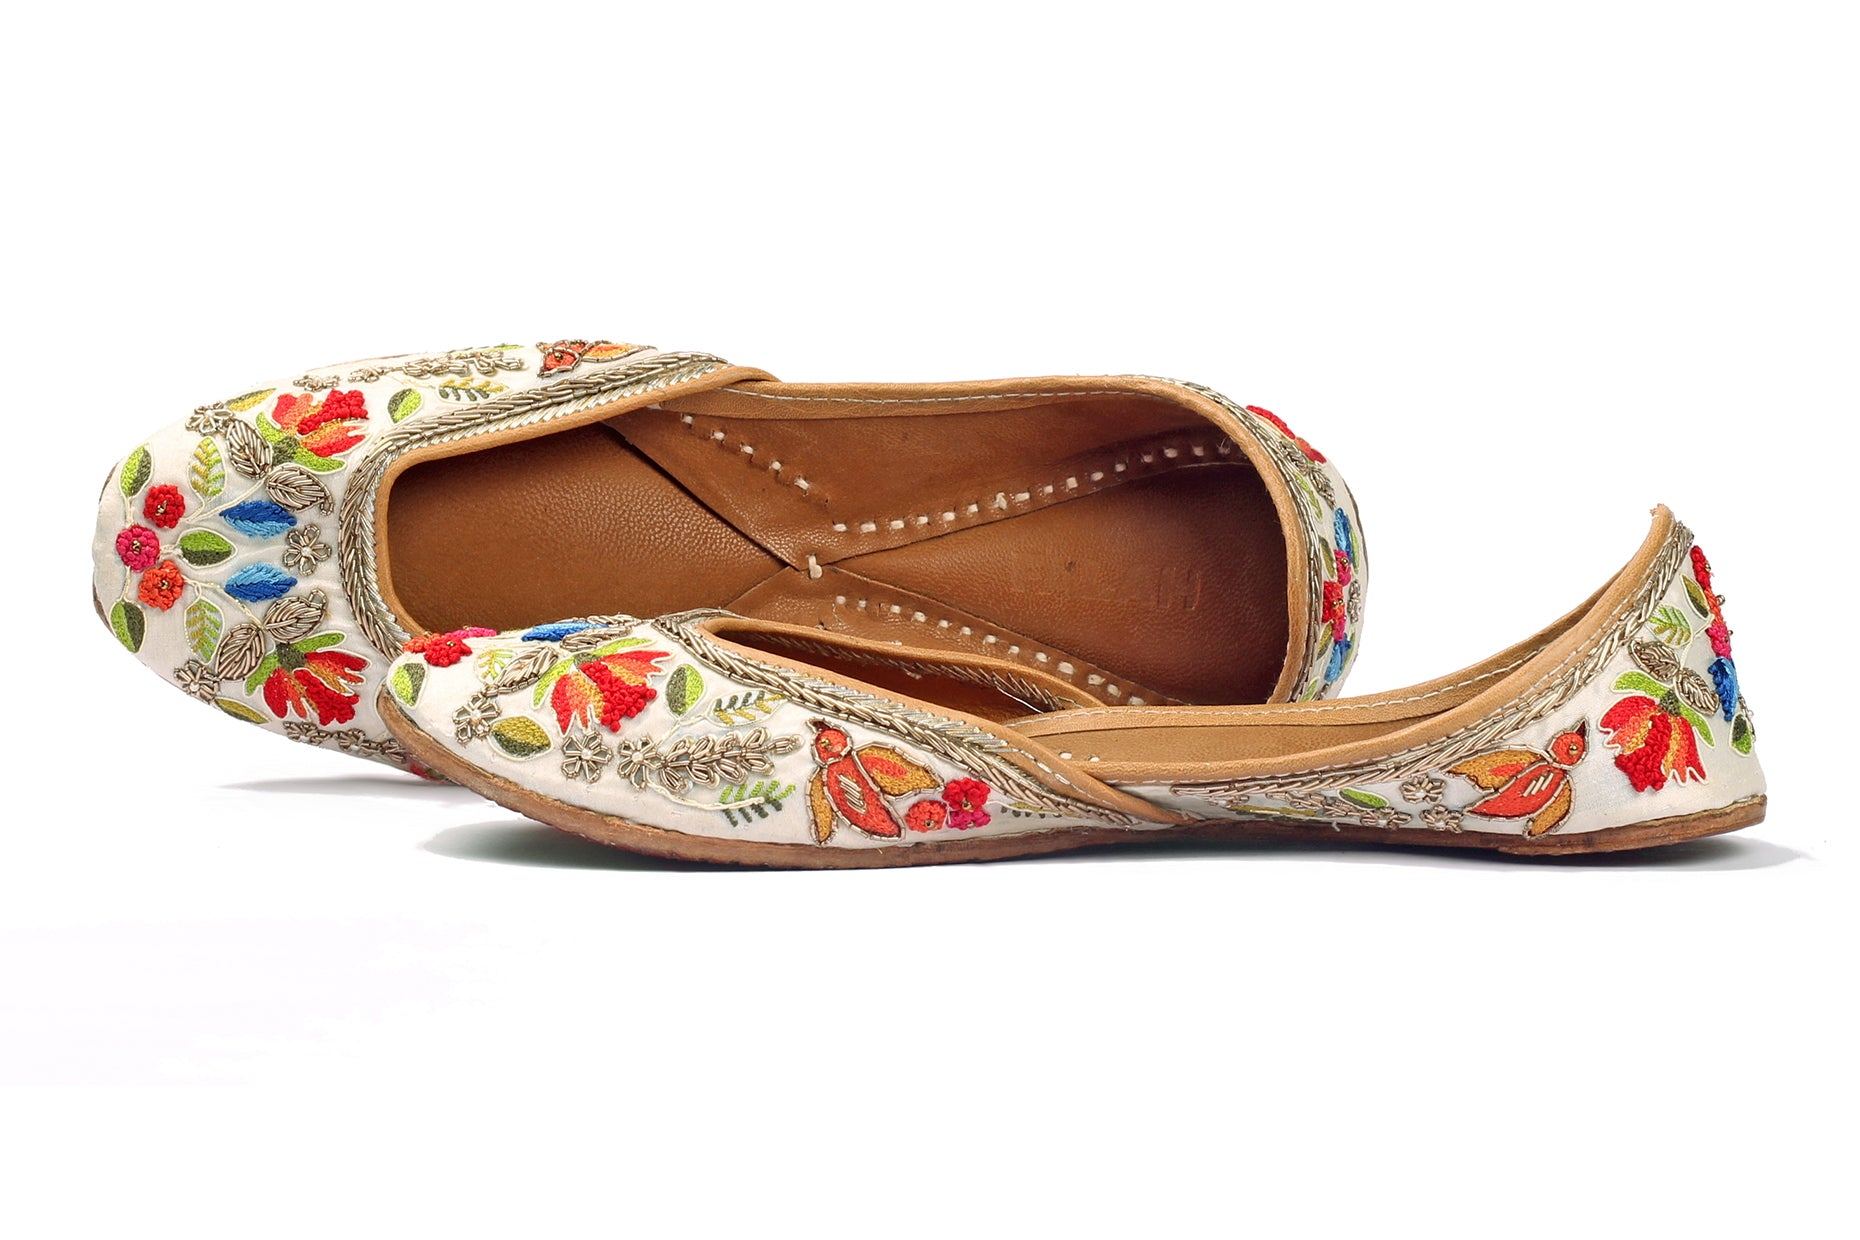 Ivory Zardozi and Resham Embroidered Jutti